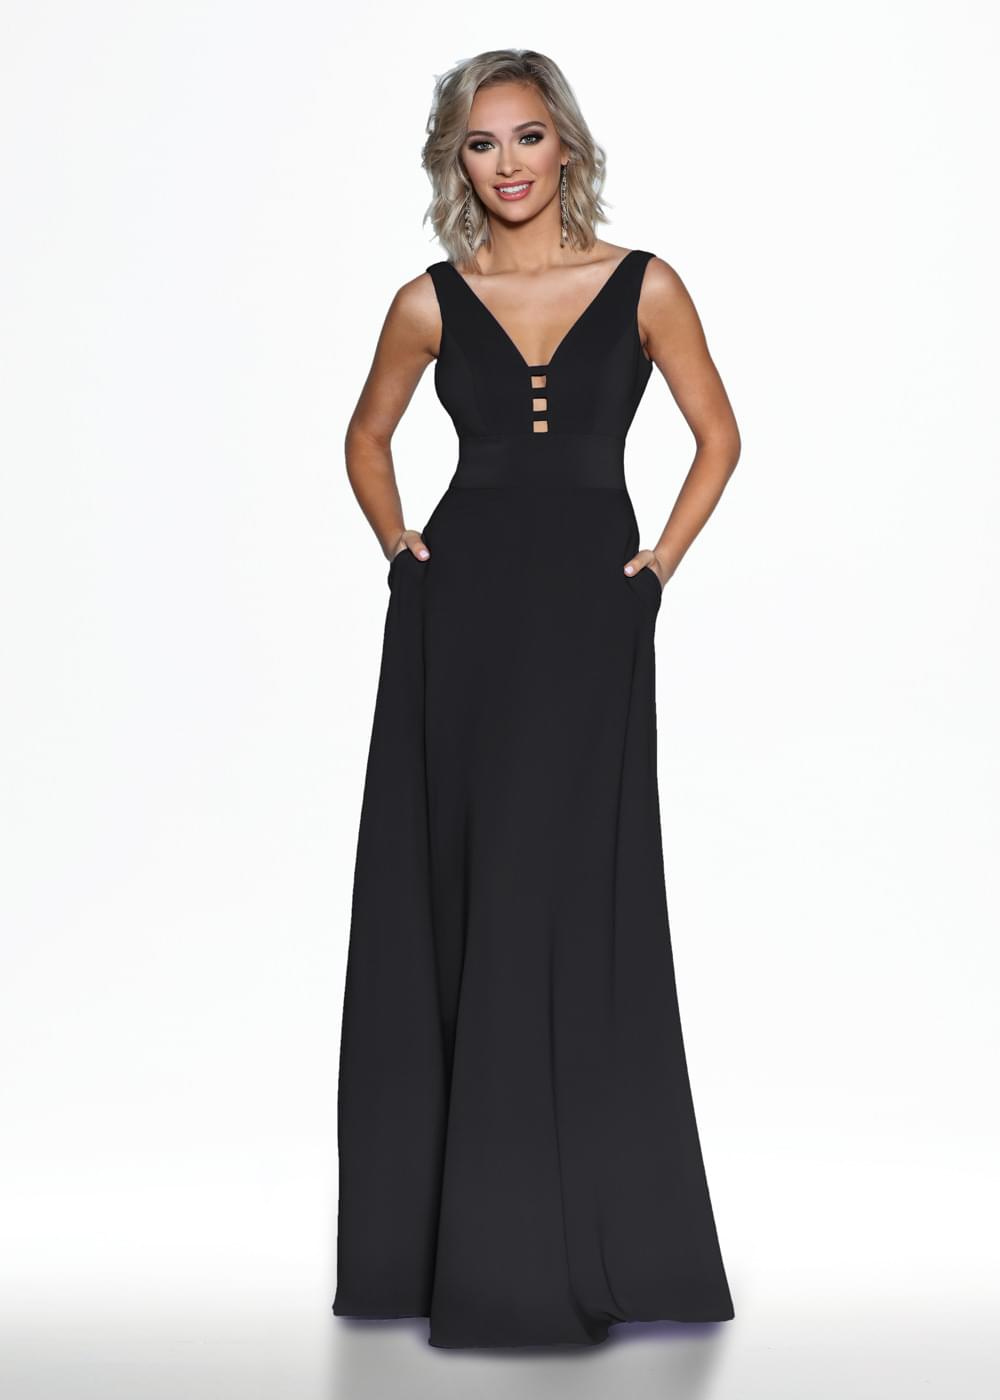 TH-80098 Black Dresses By Ashdon